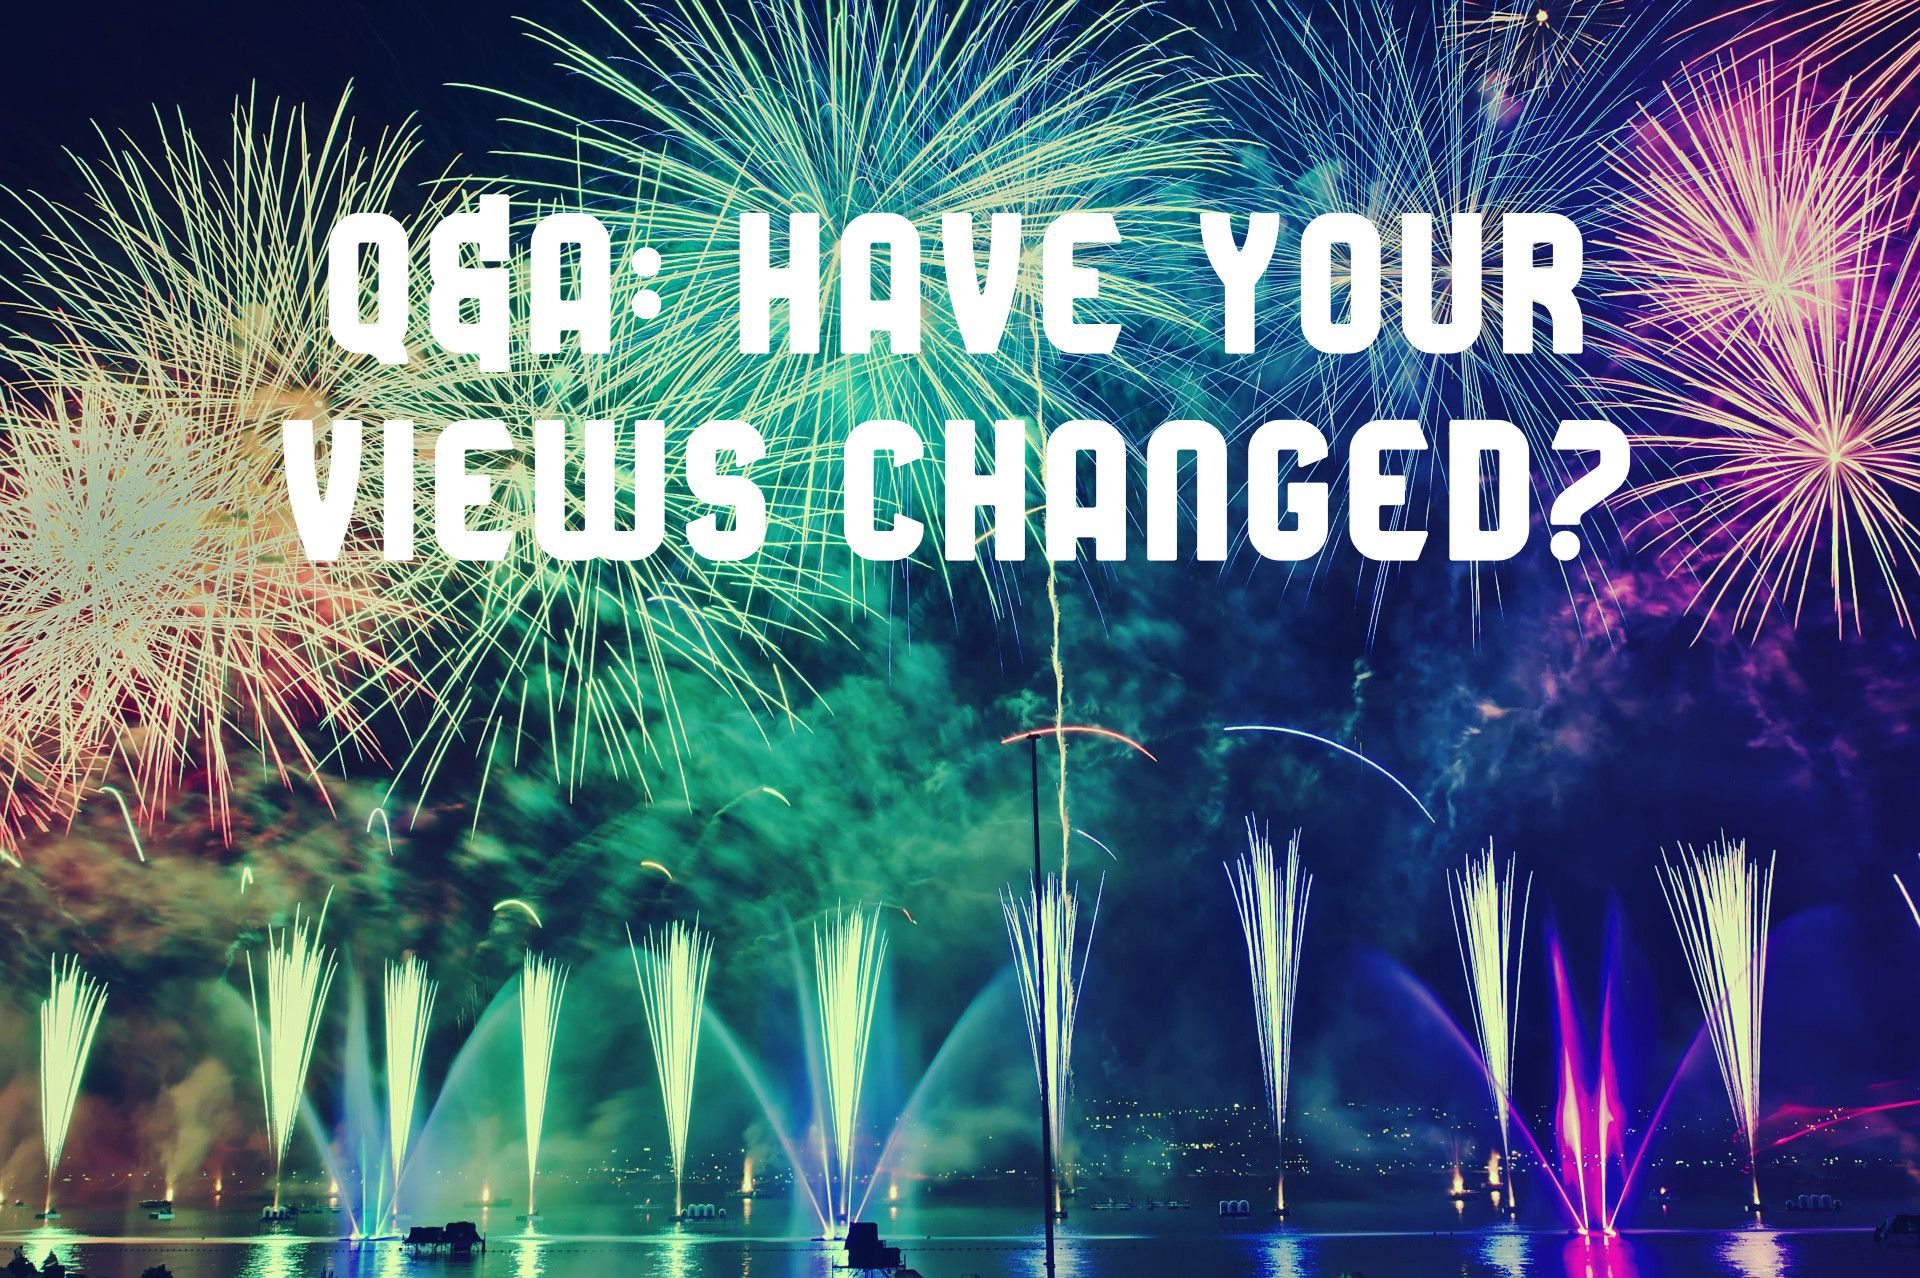 2020 Q&A: Have  Your Views Changed In Any Significant Ways?